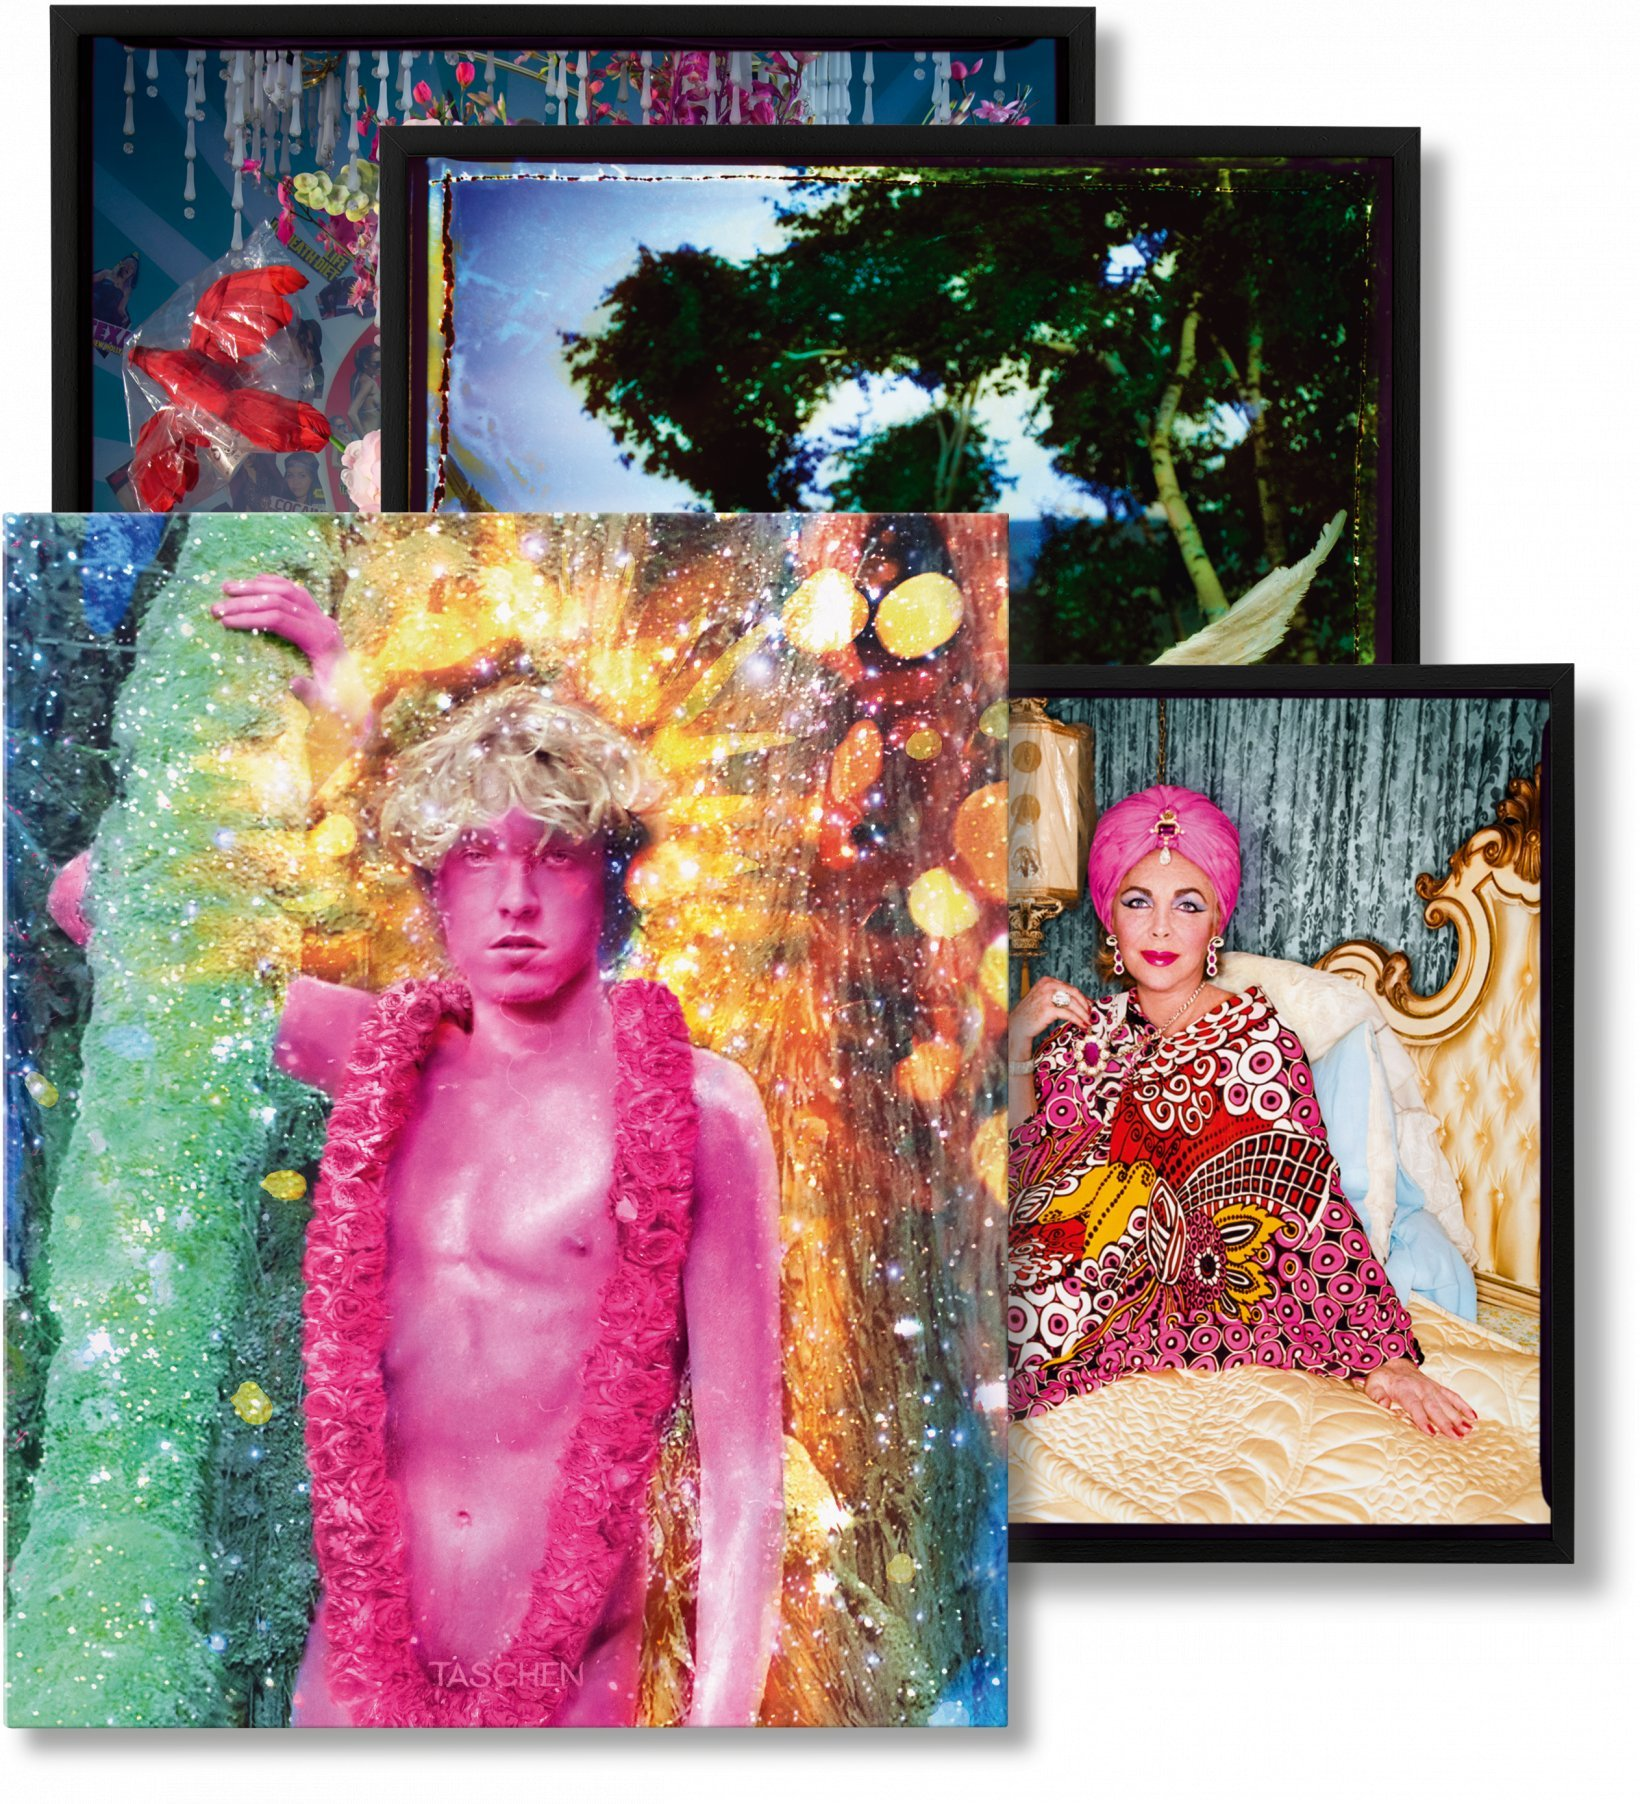 Lost and Found – Good News, Art Edition by David Lachapelle